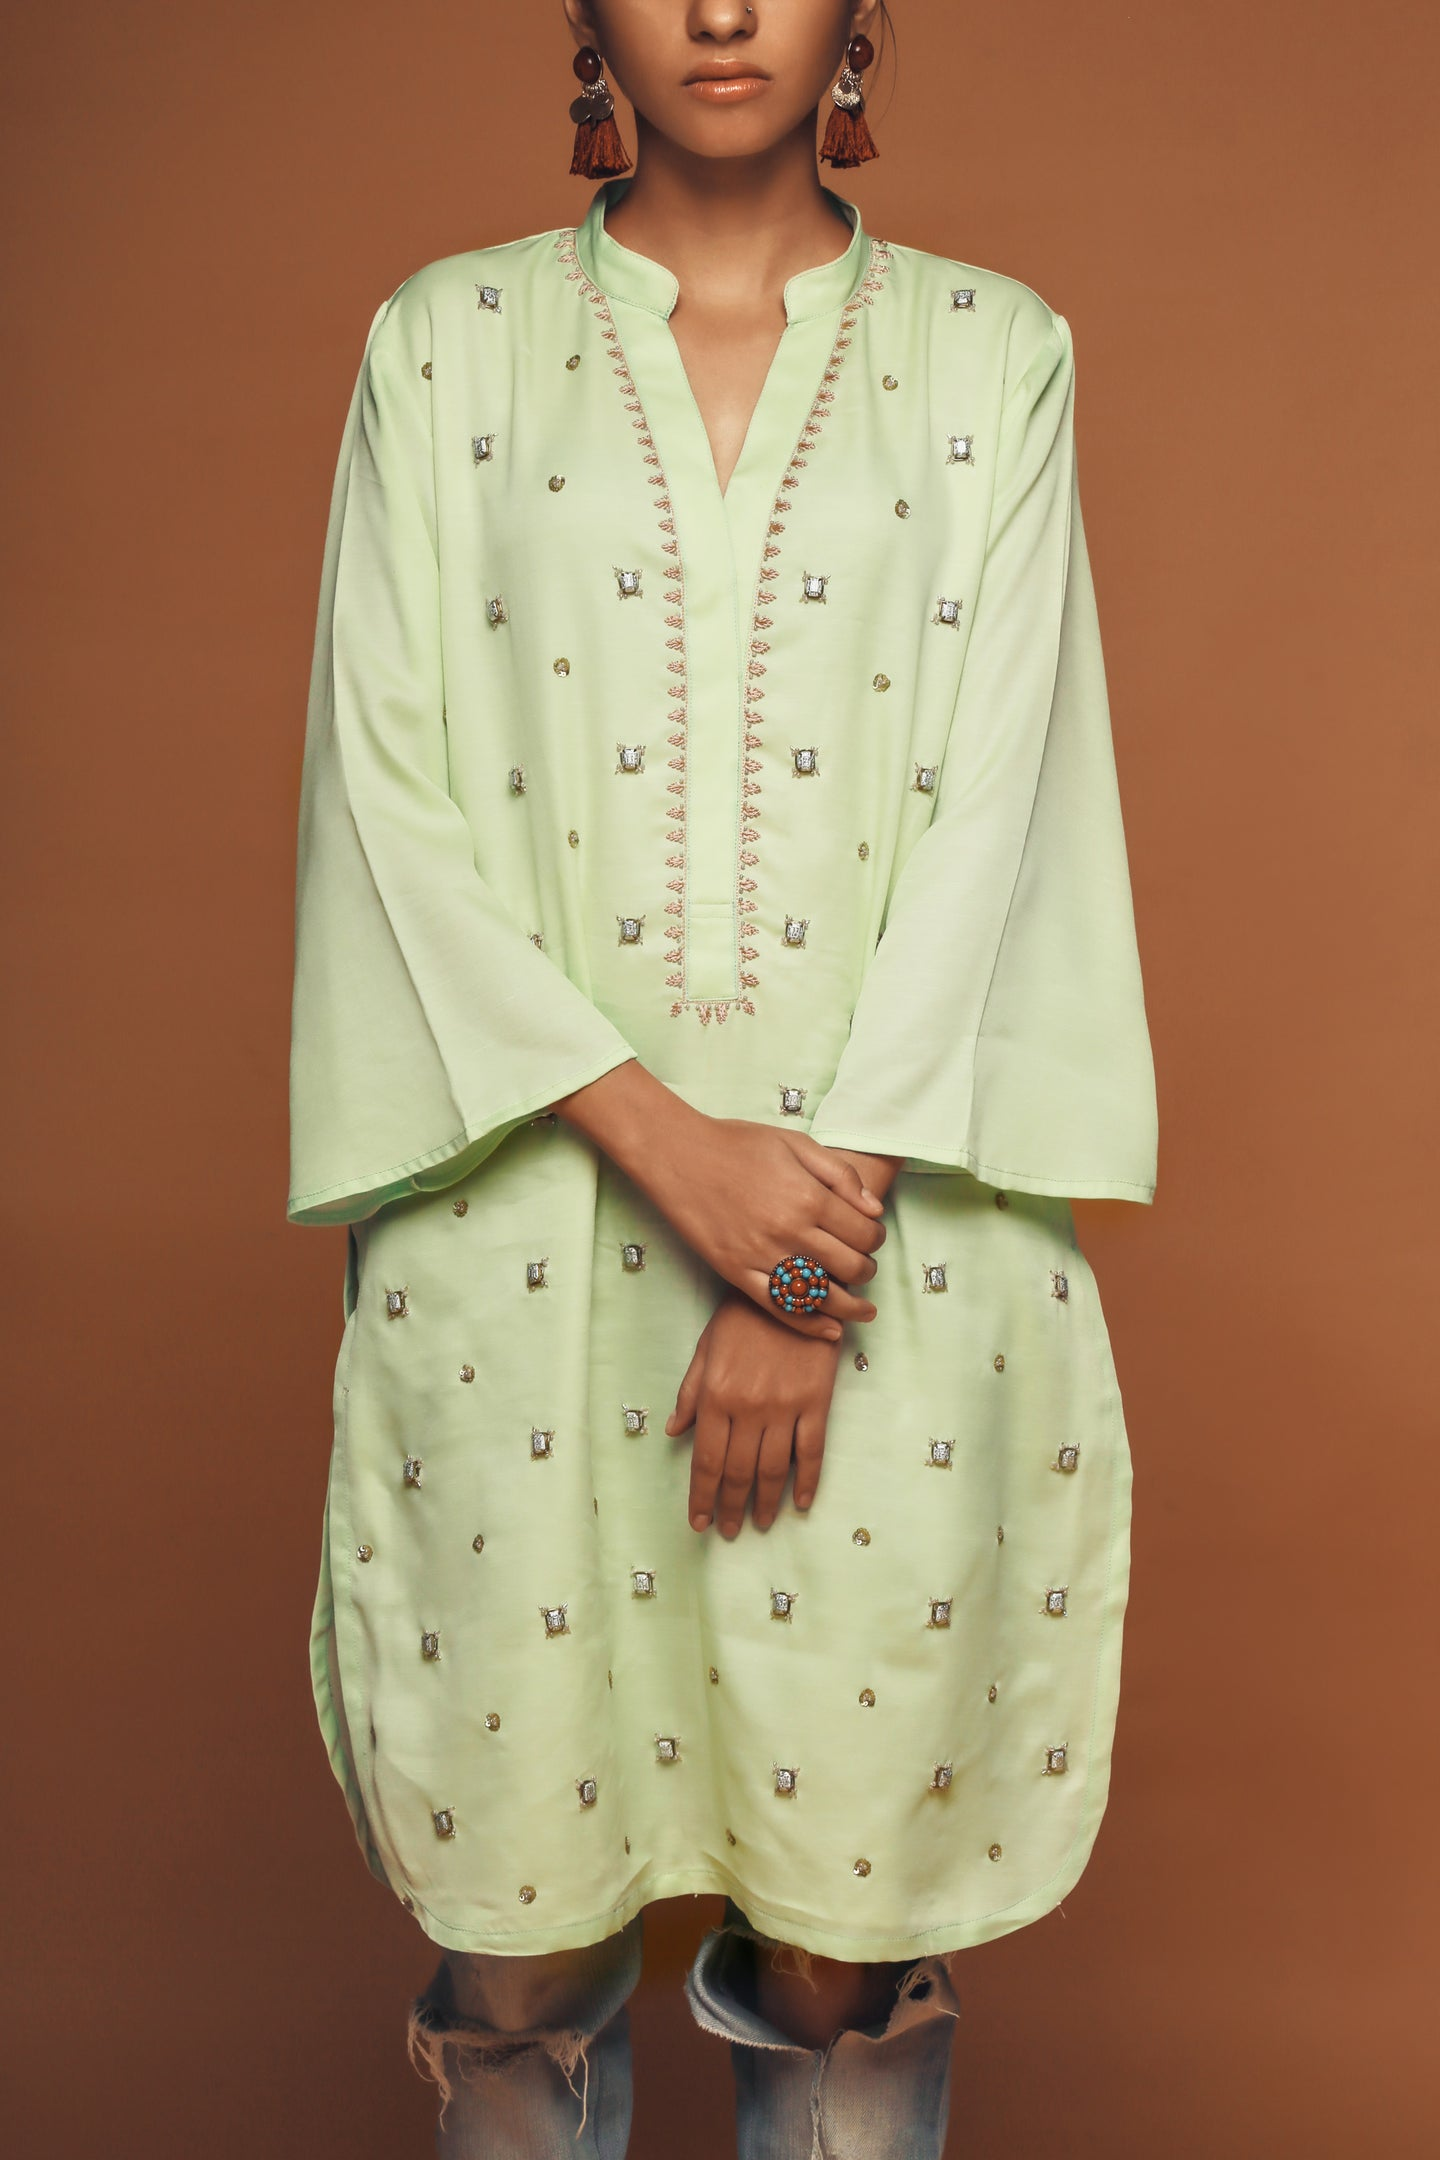 Nella - Pale mint green - Hand embroidered boxy tunic